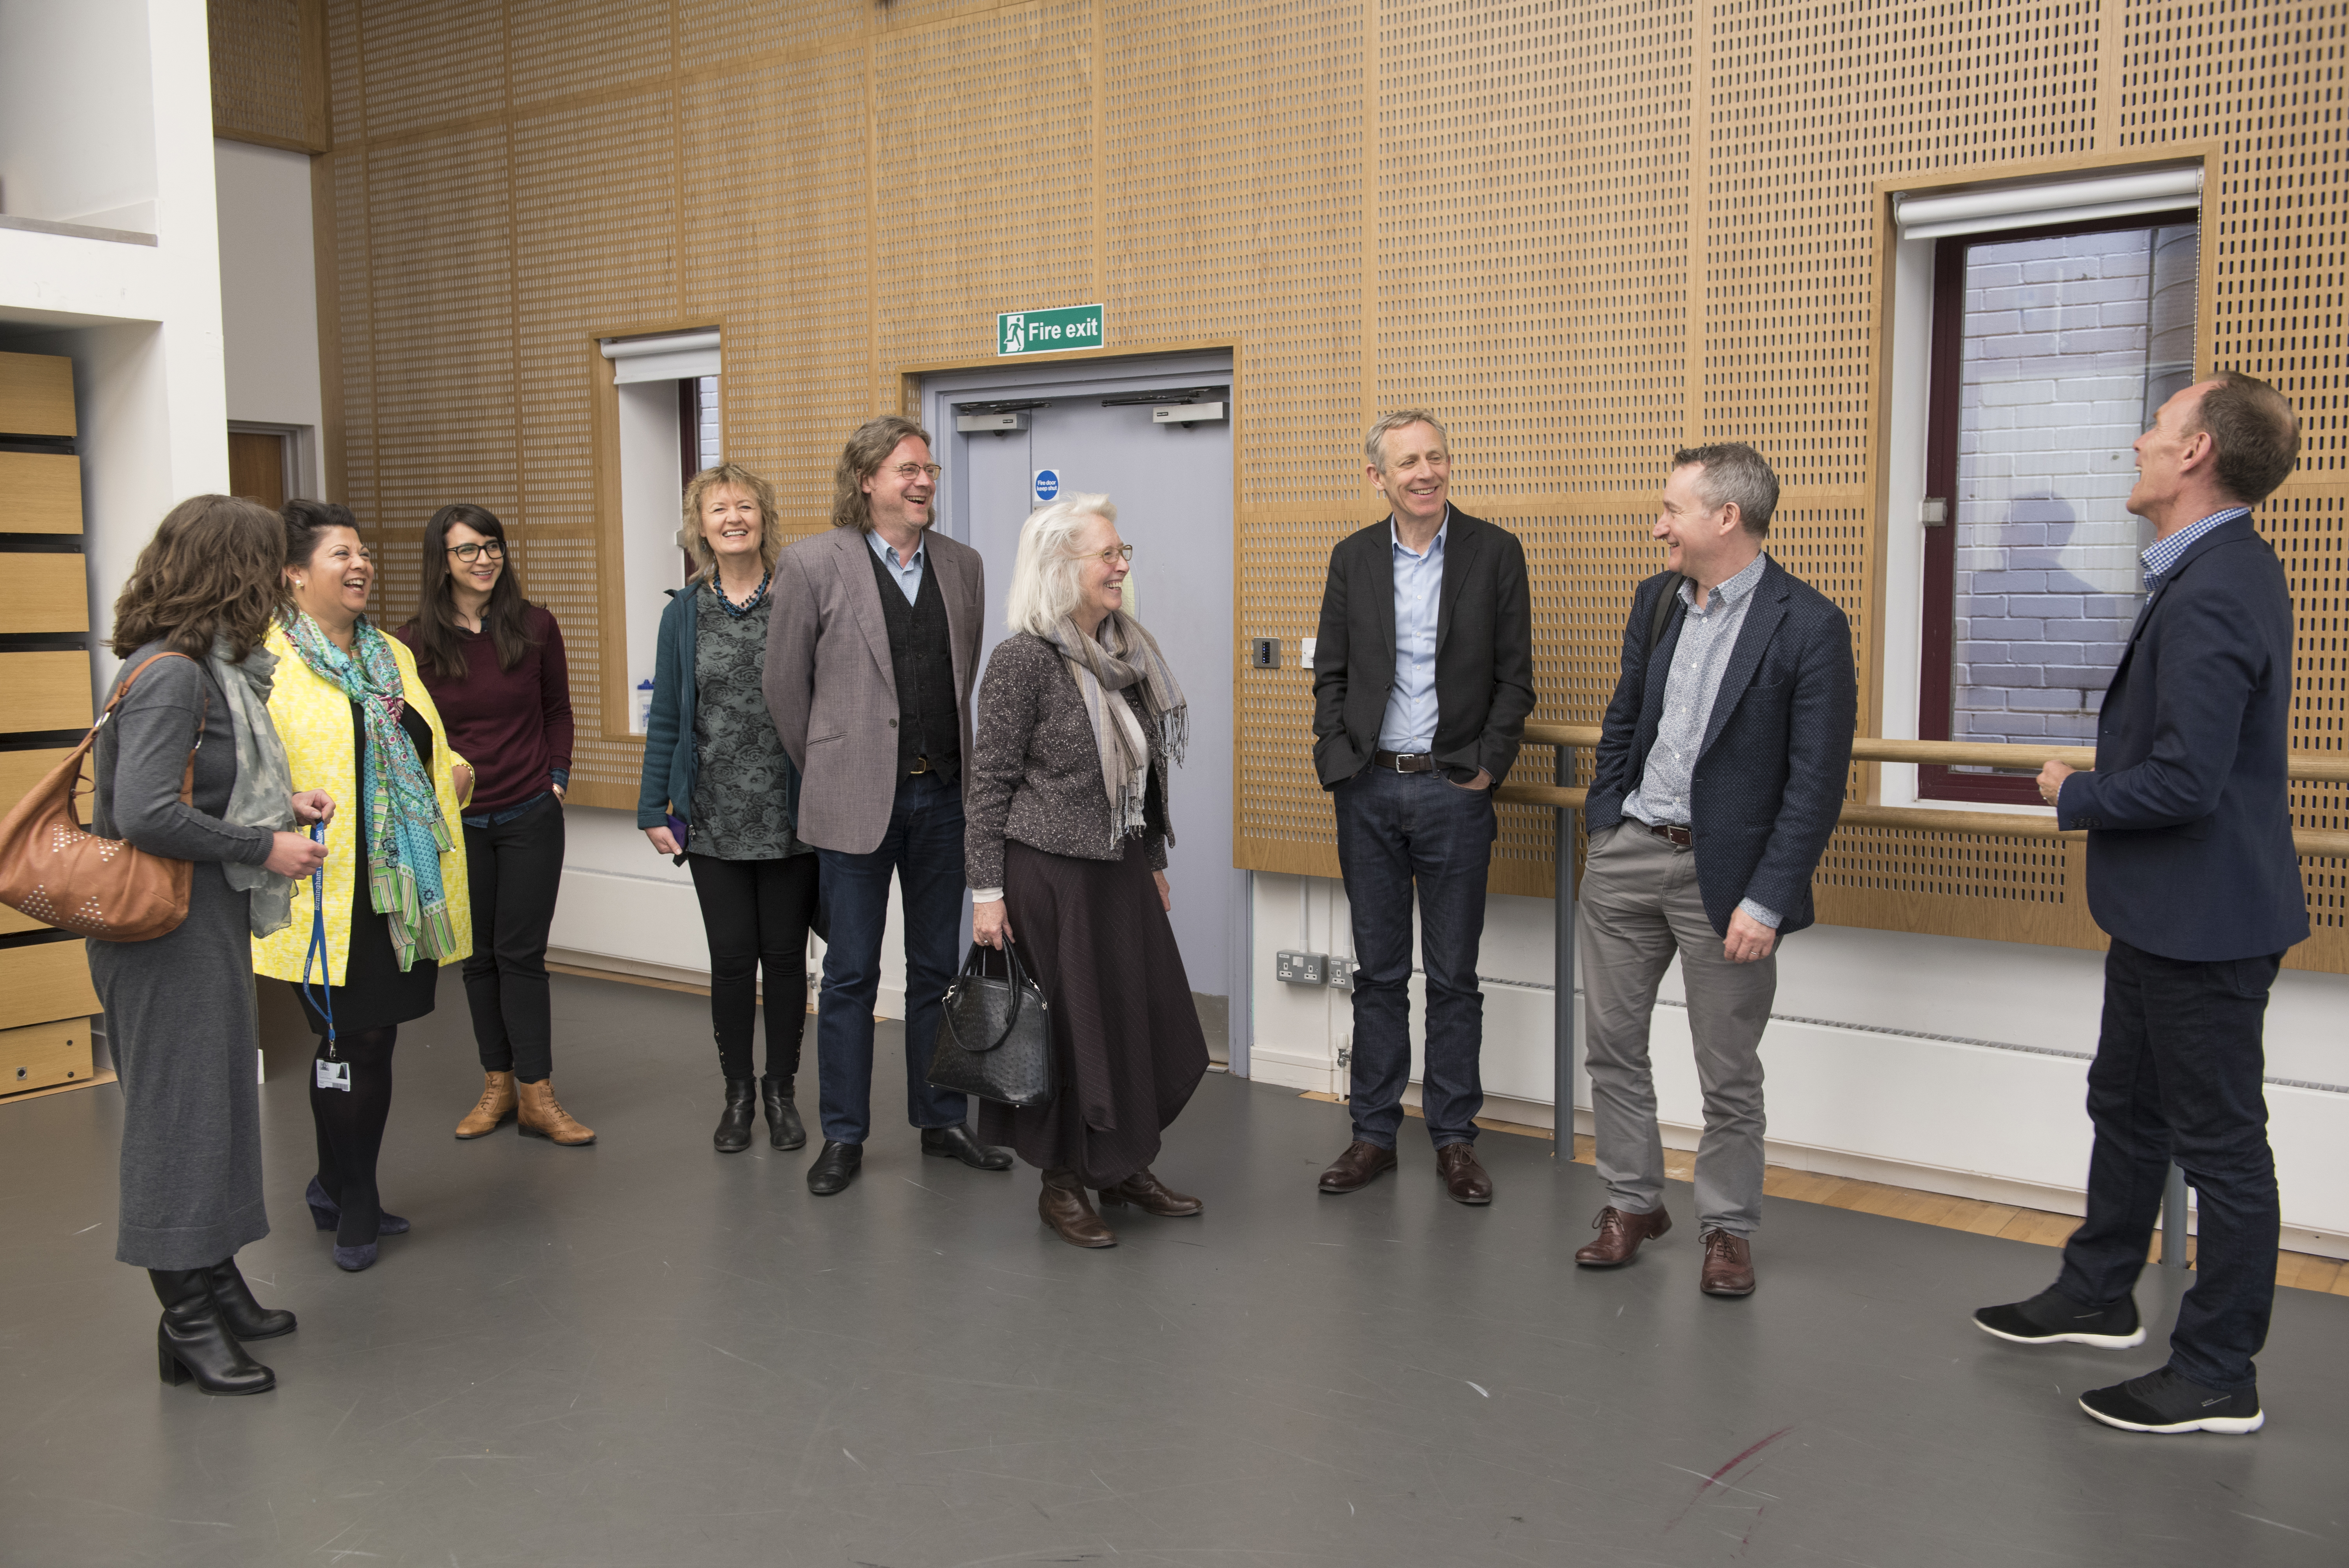 Members of the Ballet Now Creative Consortium. Photo by Phil Hitchman